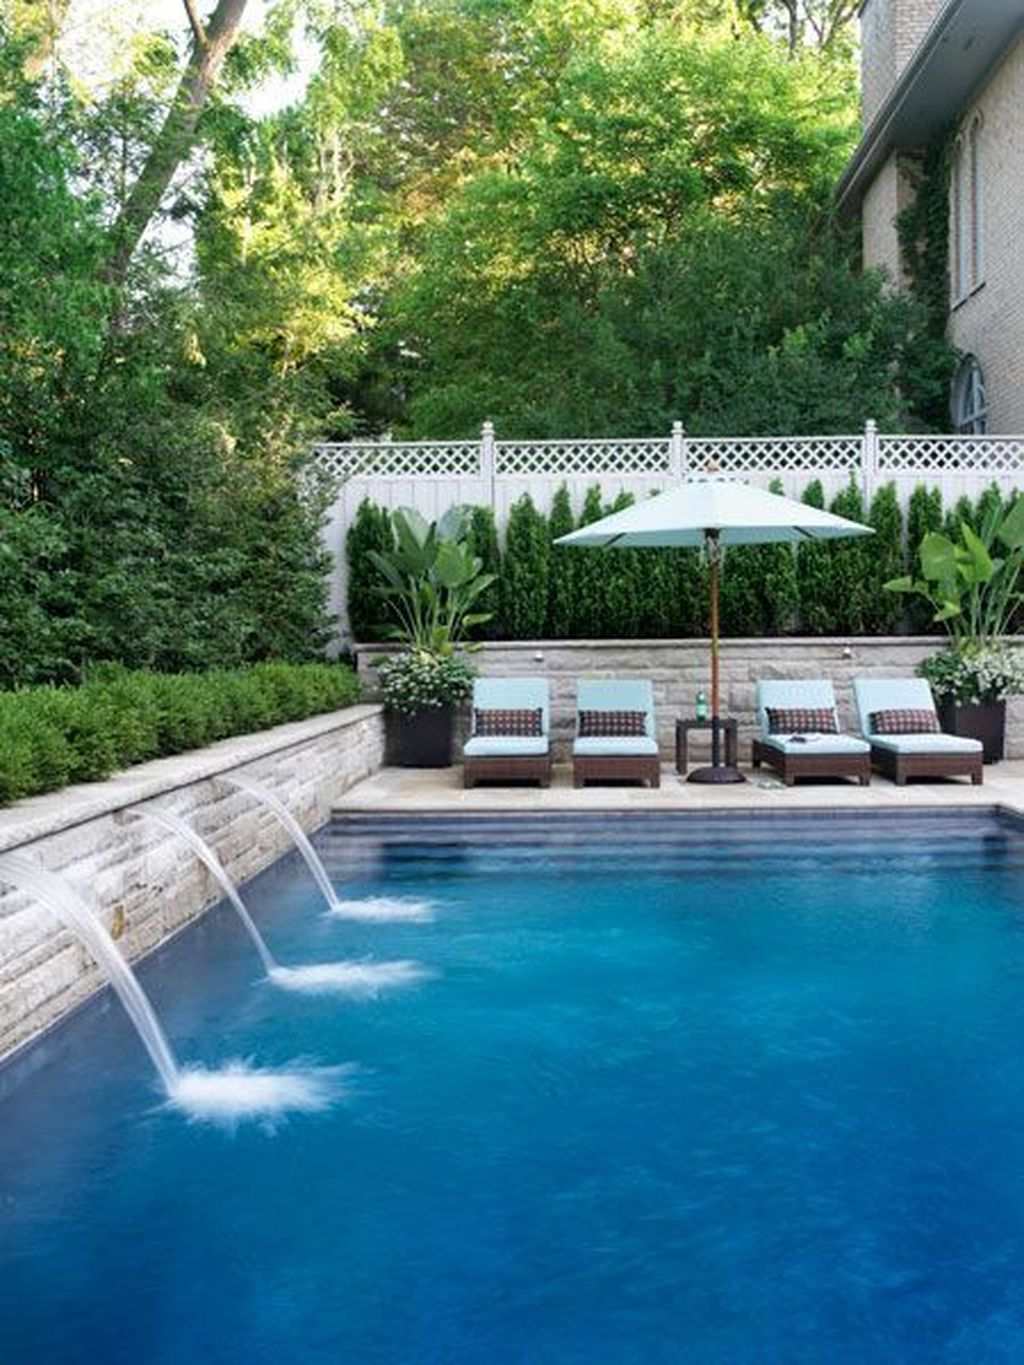 Fabulous Backyard Pool Landscaping Ideas You Never Seen Before 07